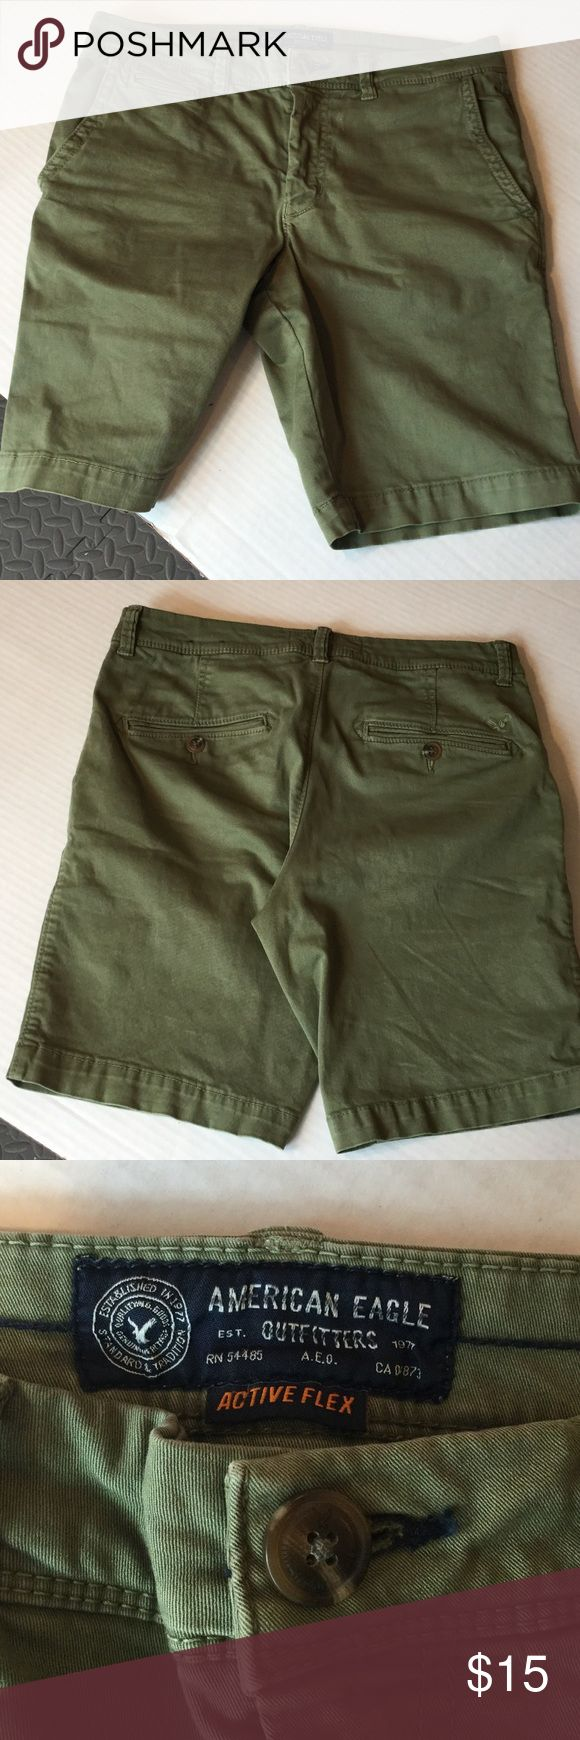 American Eagle Guys Shorts Olive green size 30 Slim flat front shorts good condition. American Eagle Outfitters Shorts Flat Front